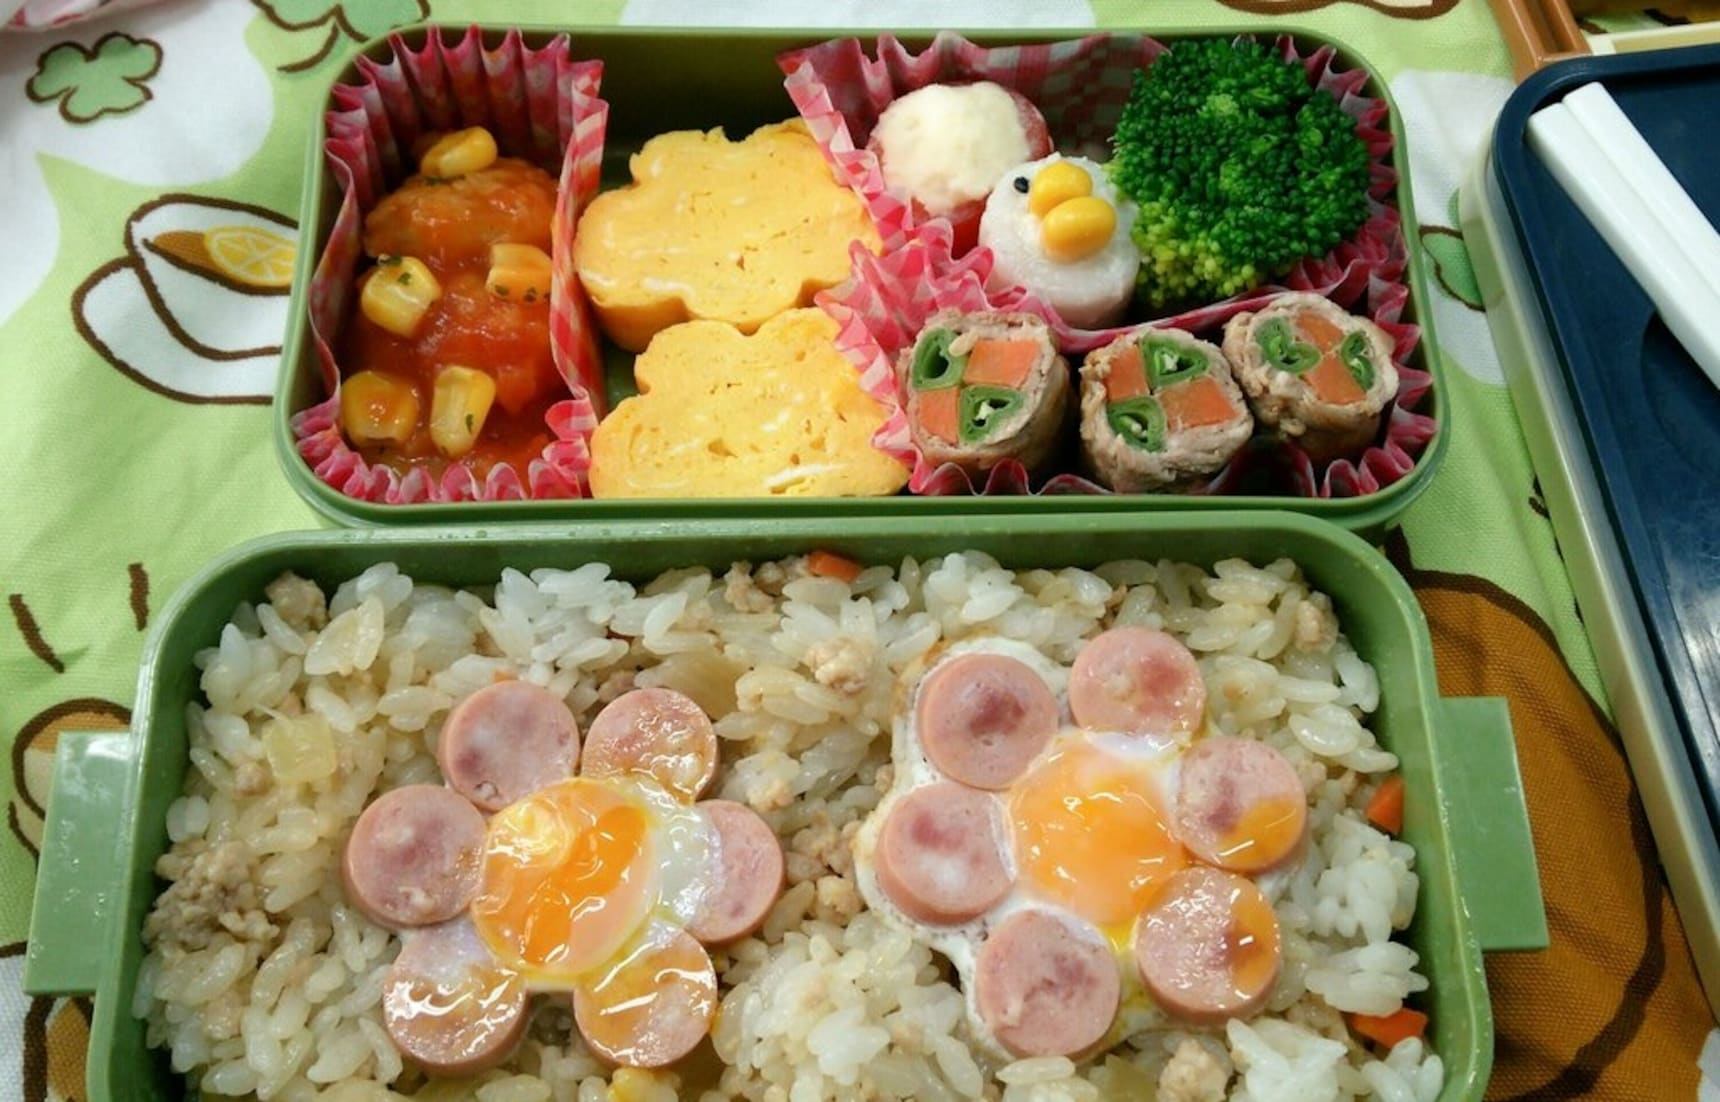 Graduation Bentos Prove to Be Bitter Sweet